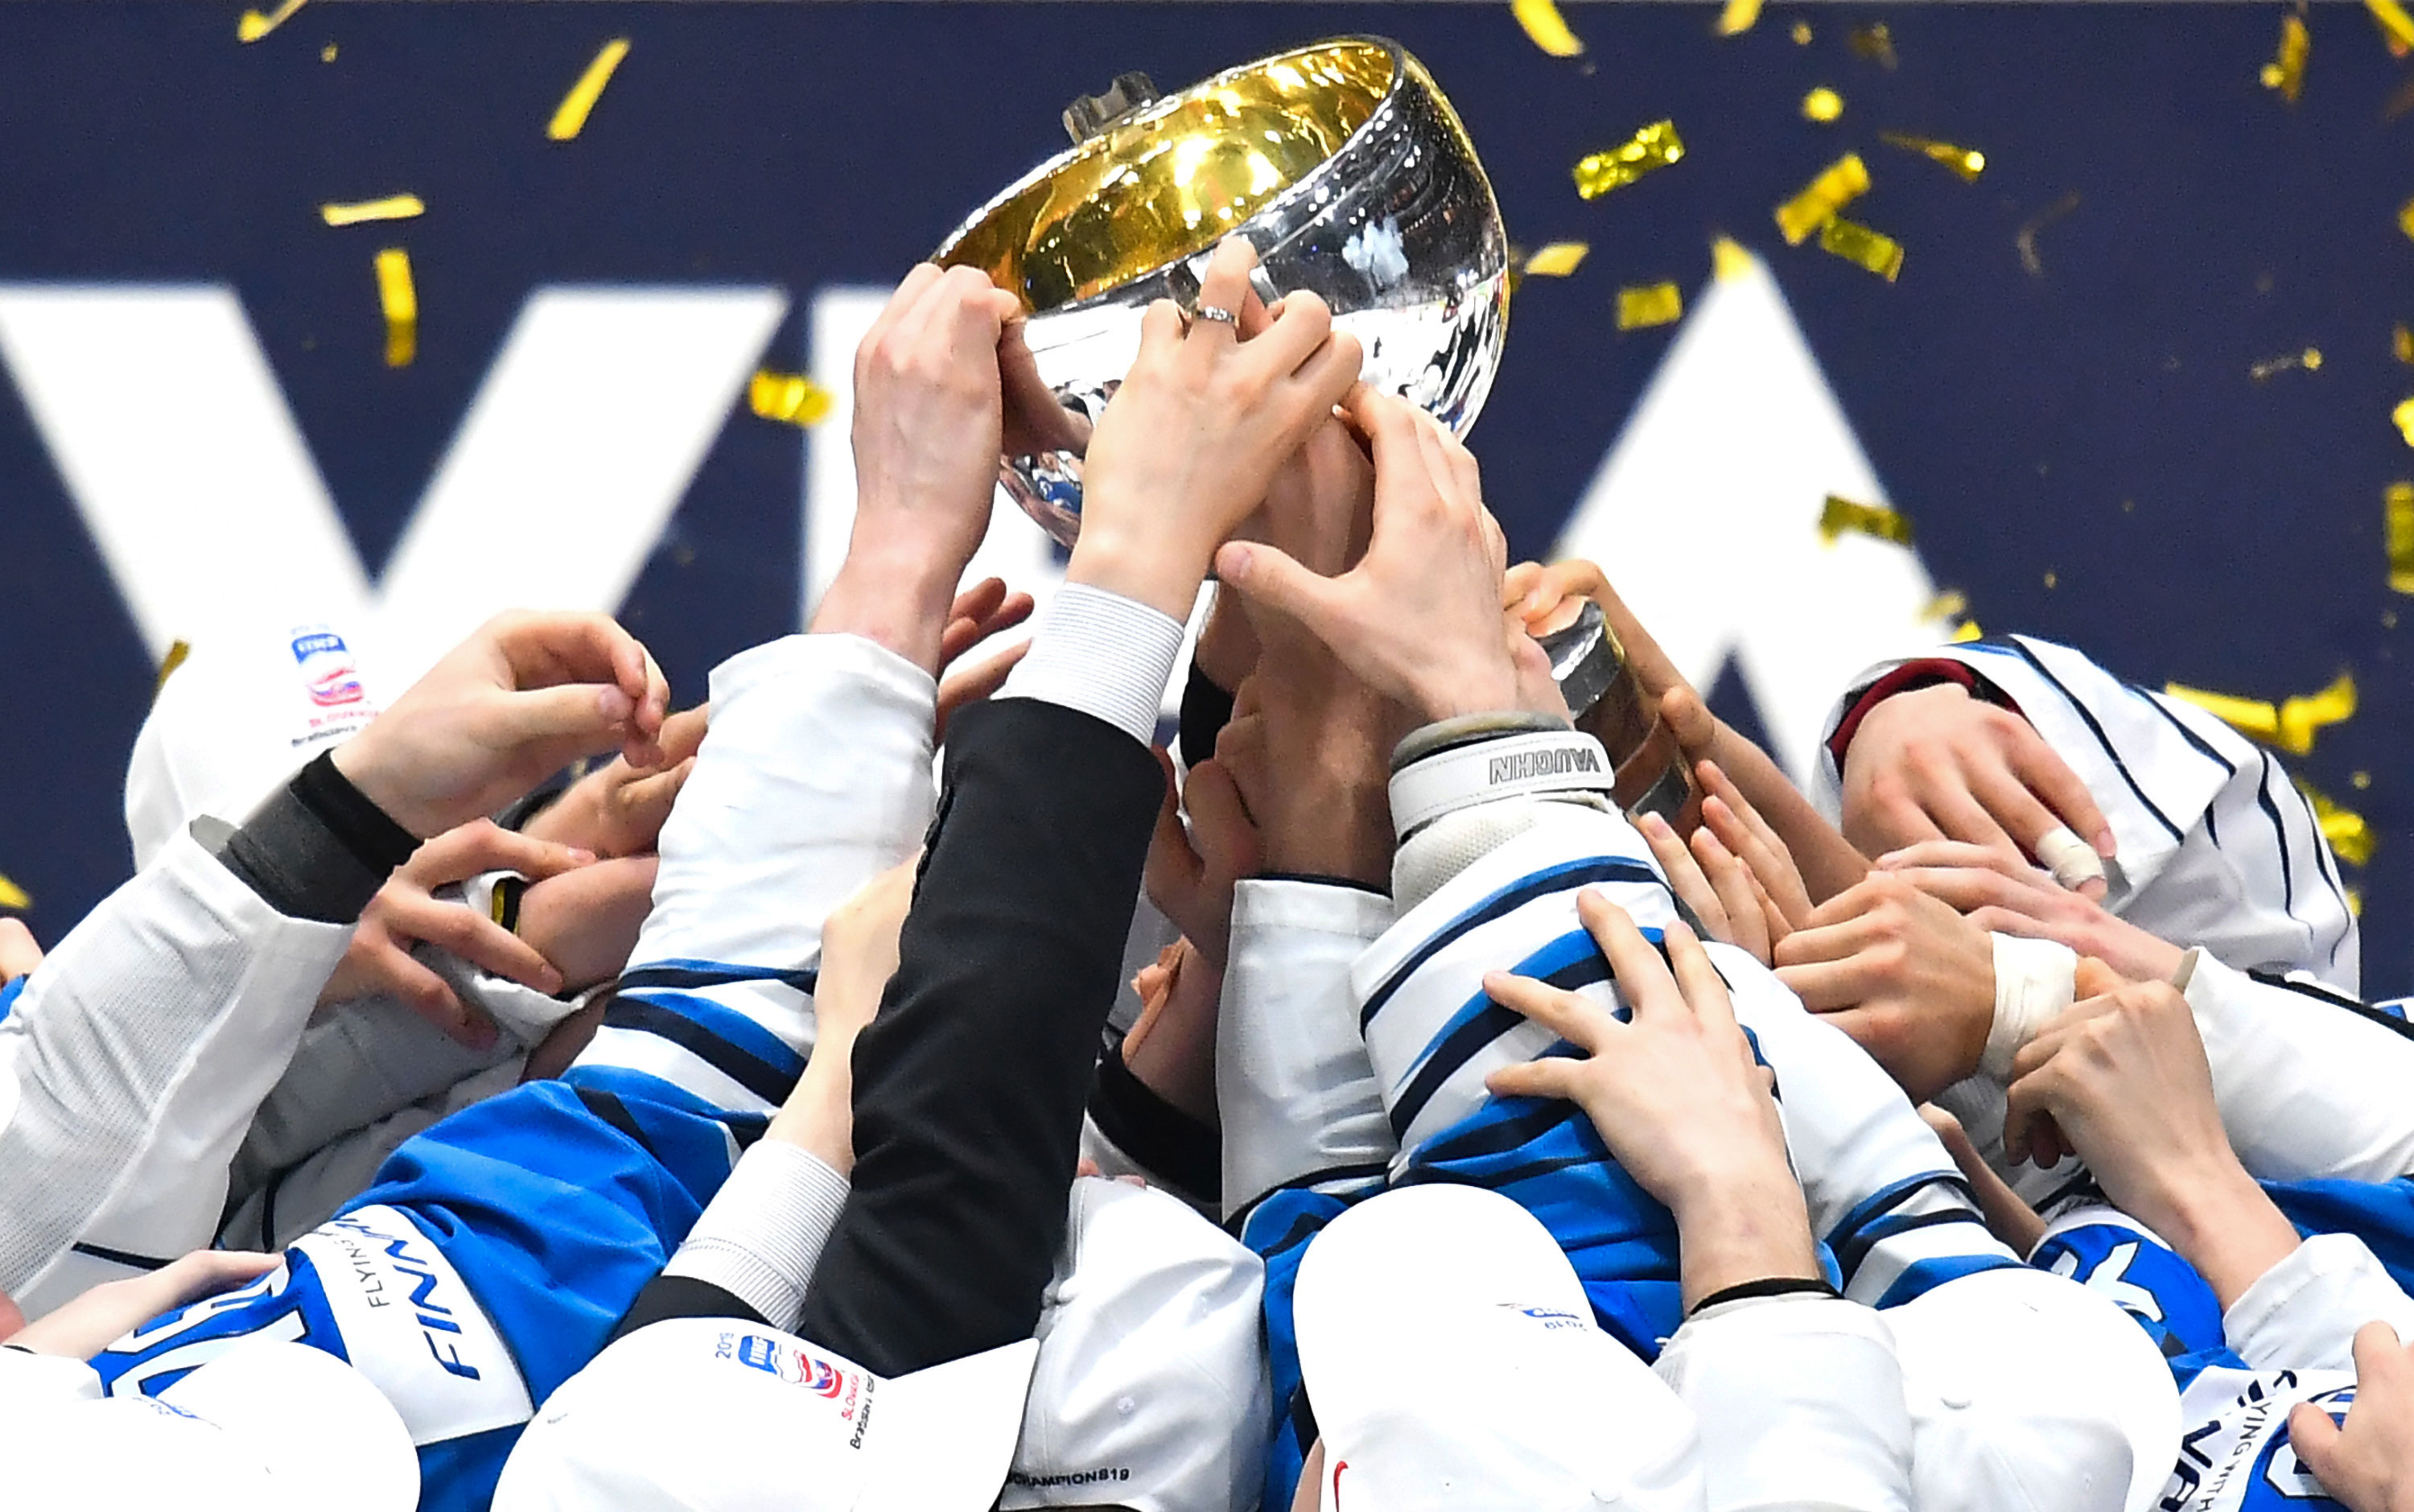 Finland's players celebrate after winning the Men's Ice Hockey World Championships final against Canada on May 26, 2019 in Bratislava, Slovakia.